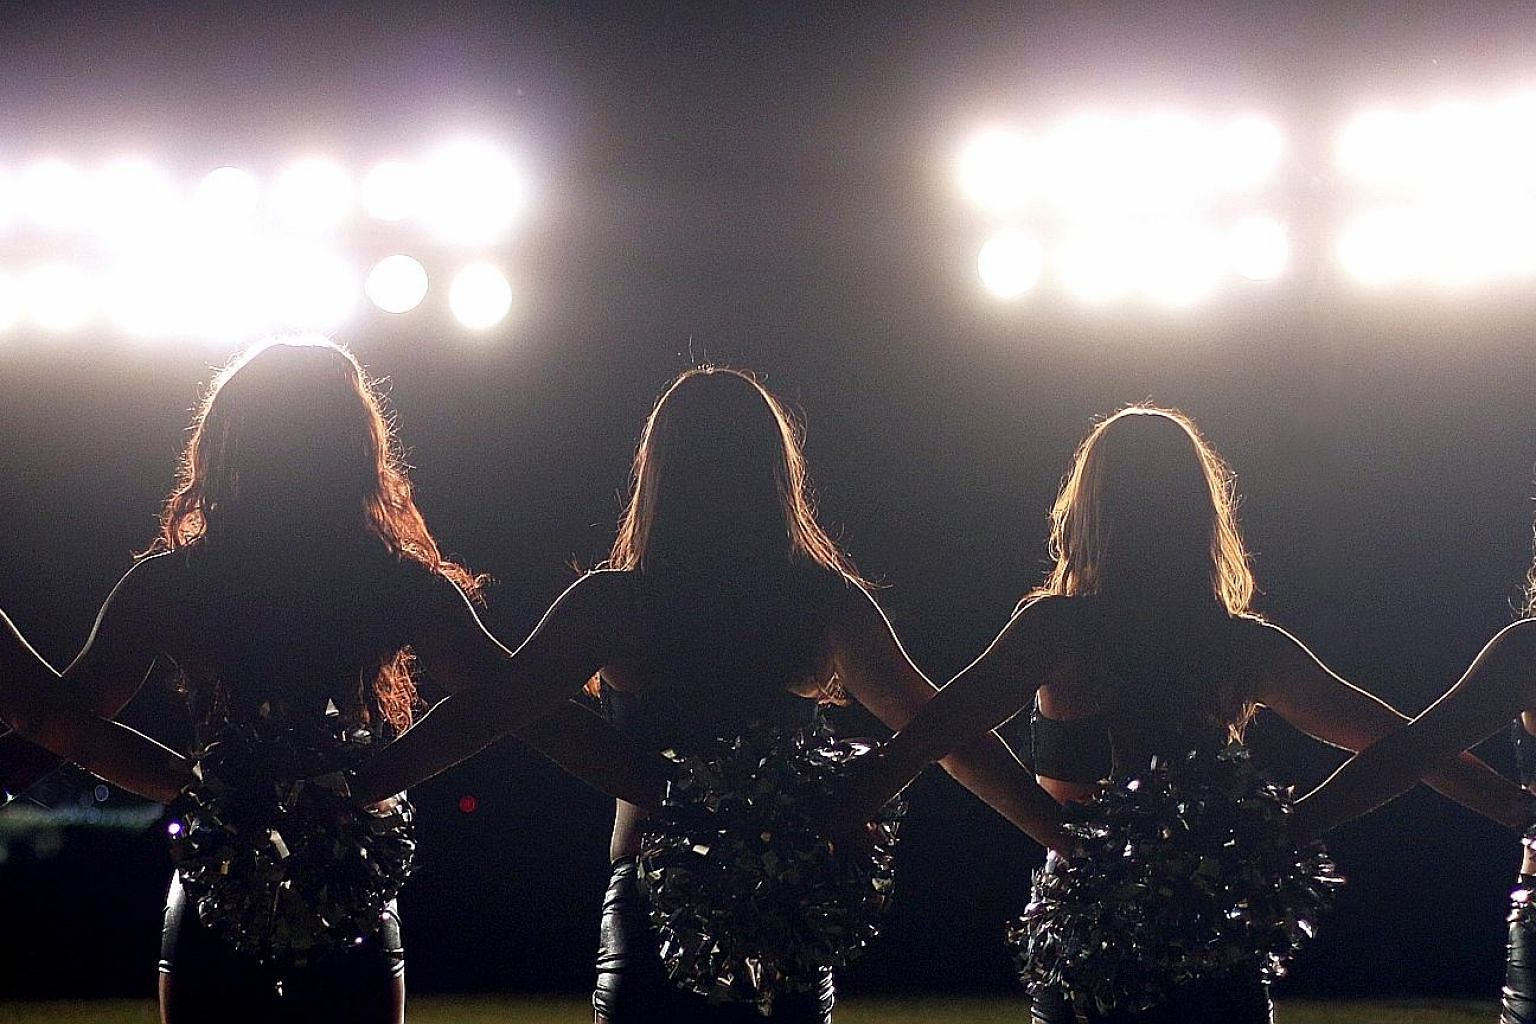 Among the films to be screened at Women In Film are A Woman's Work - The NFL's Cheerleader Problem (2019, left), by China-born Canadian director Yu Gu, and Leftover Women (2019, left below), by Israeli film-makers Shosh Shlam and Hilla Medalia.